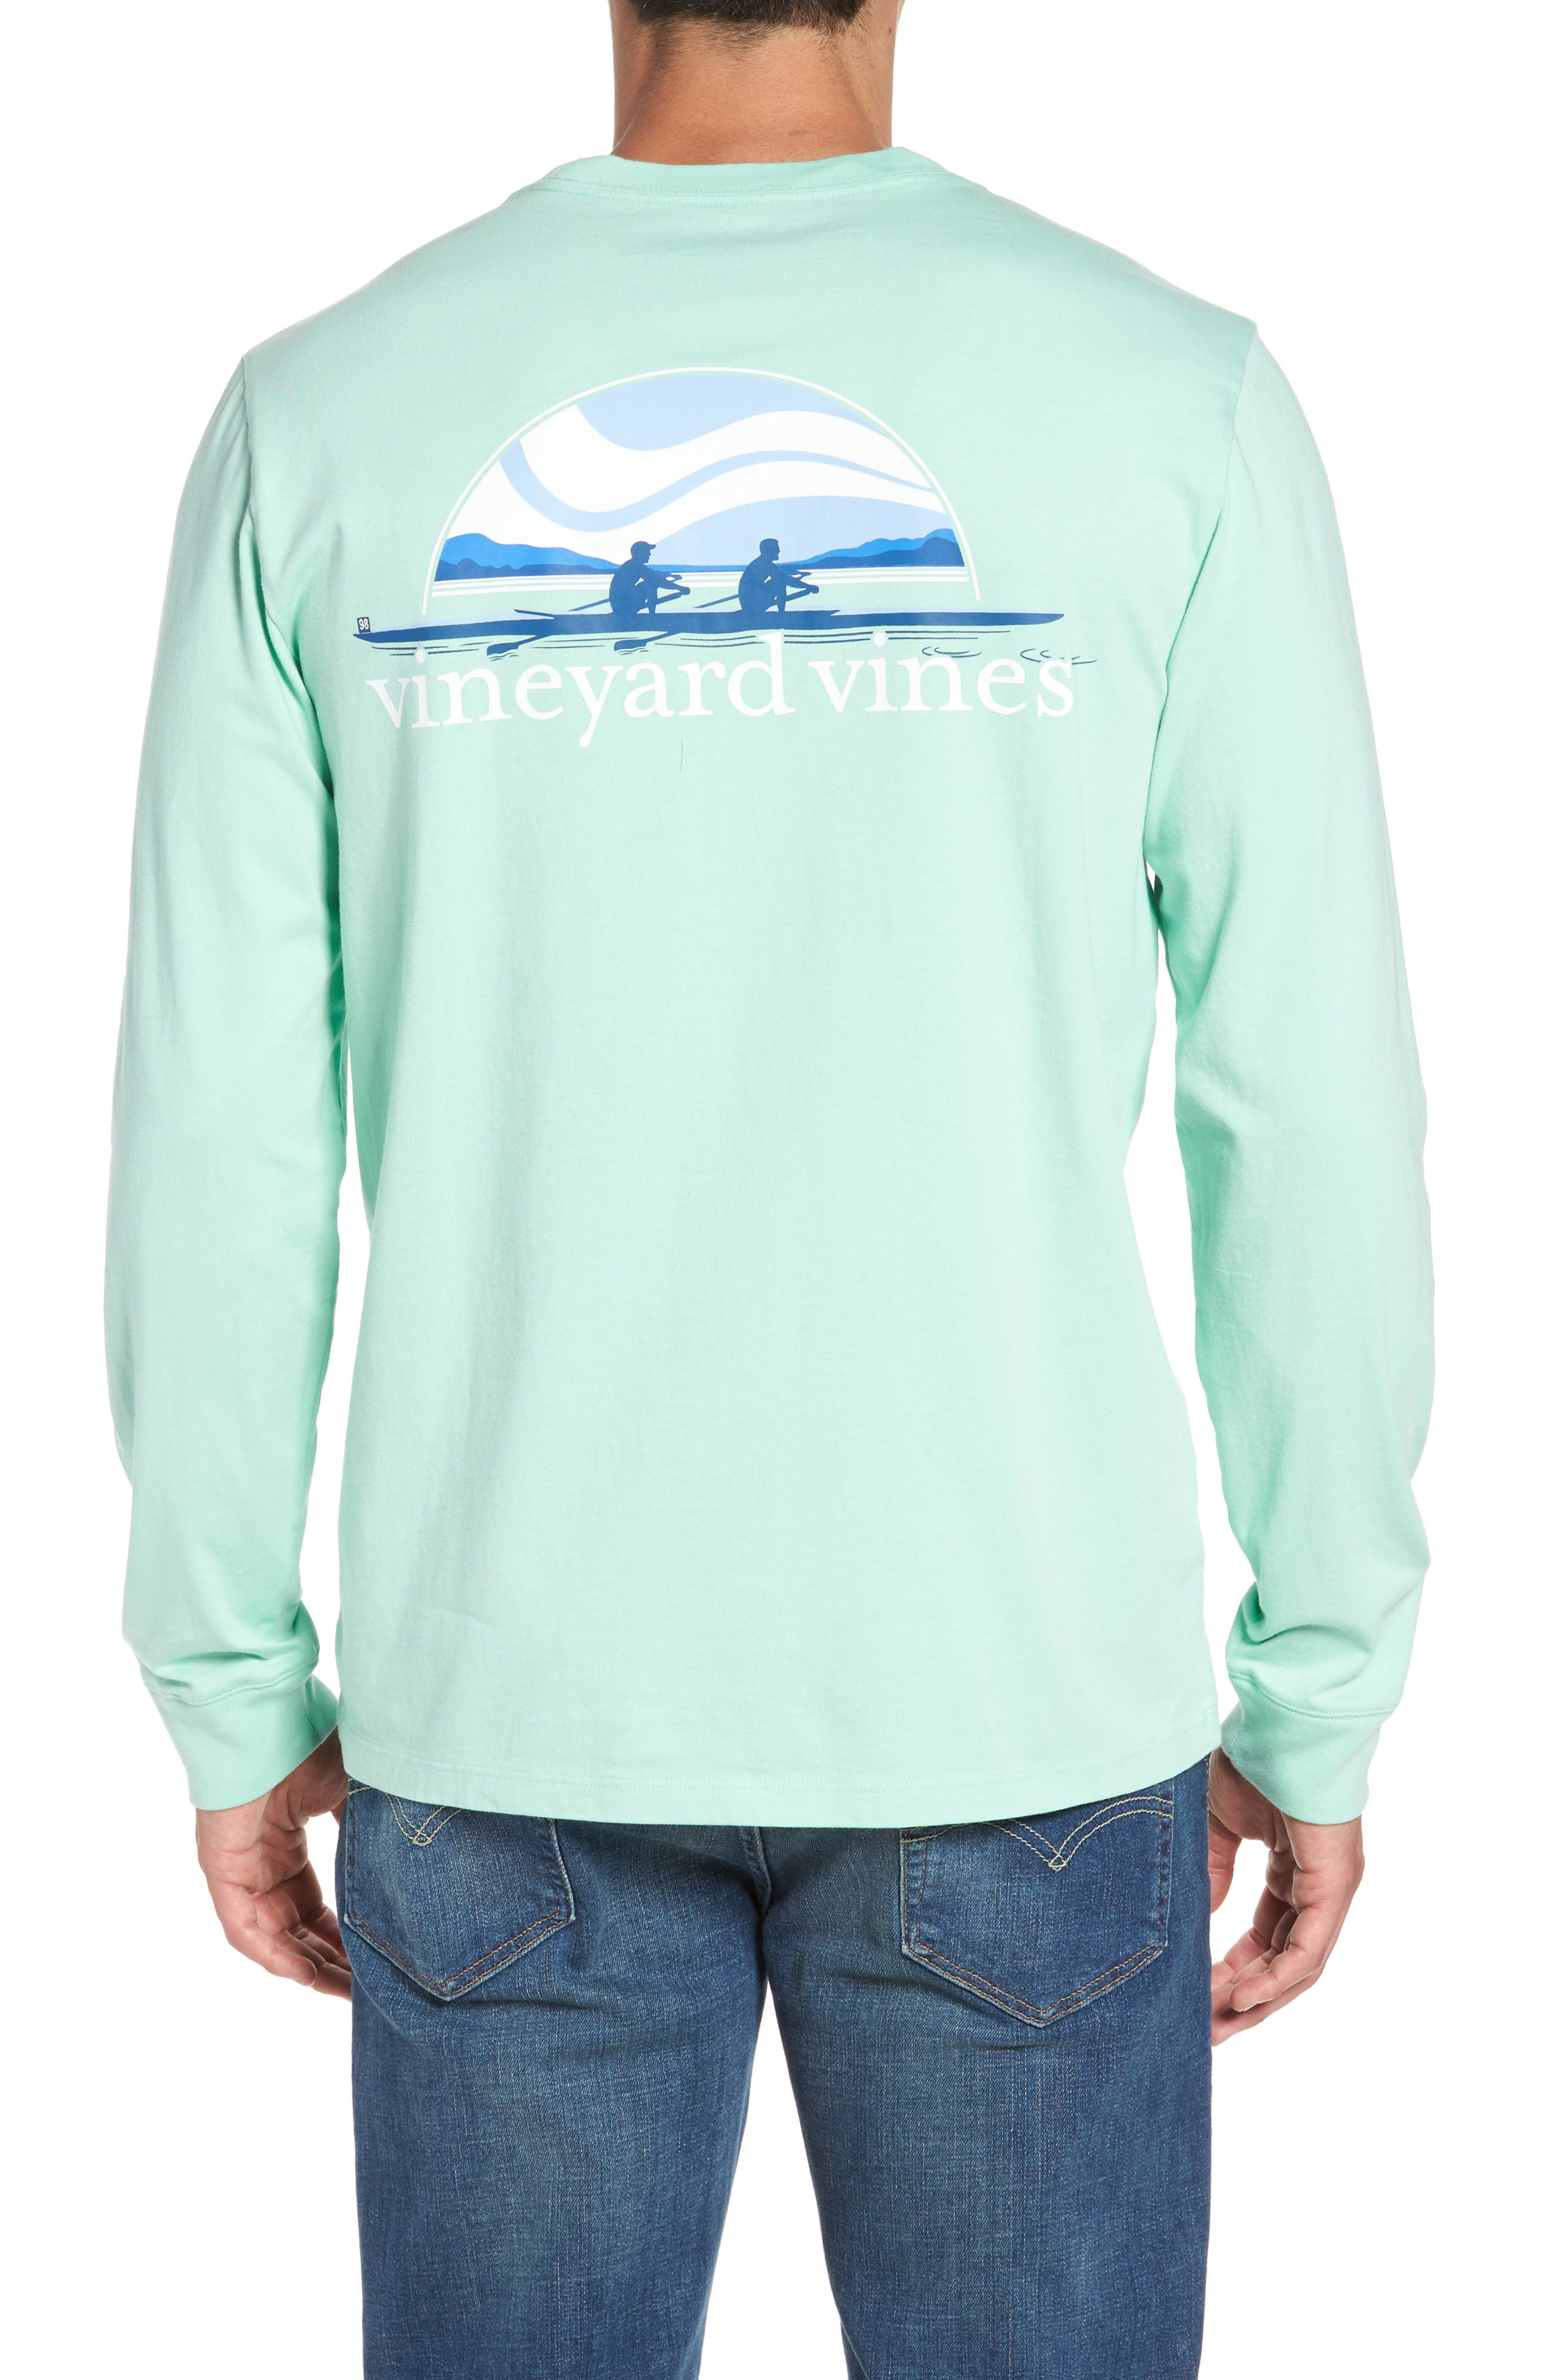 Alternate Image 1 Selected - Vineyard Vines Rowing Graphic T-Shirt